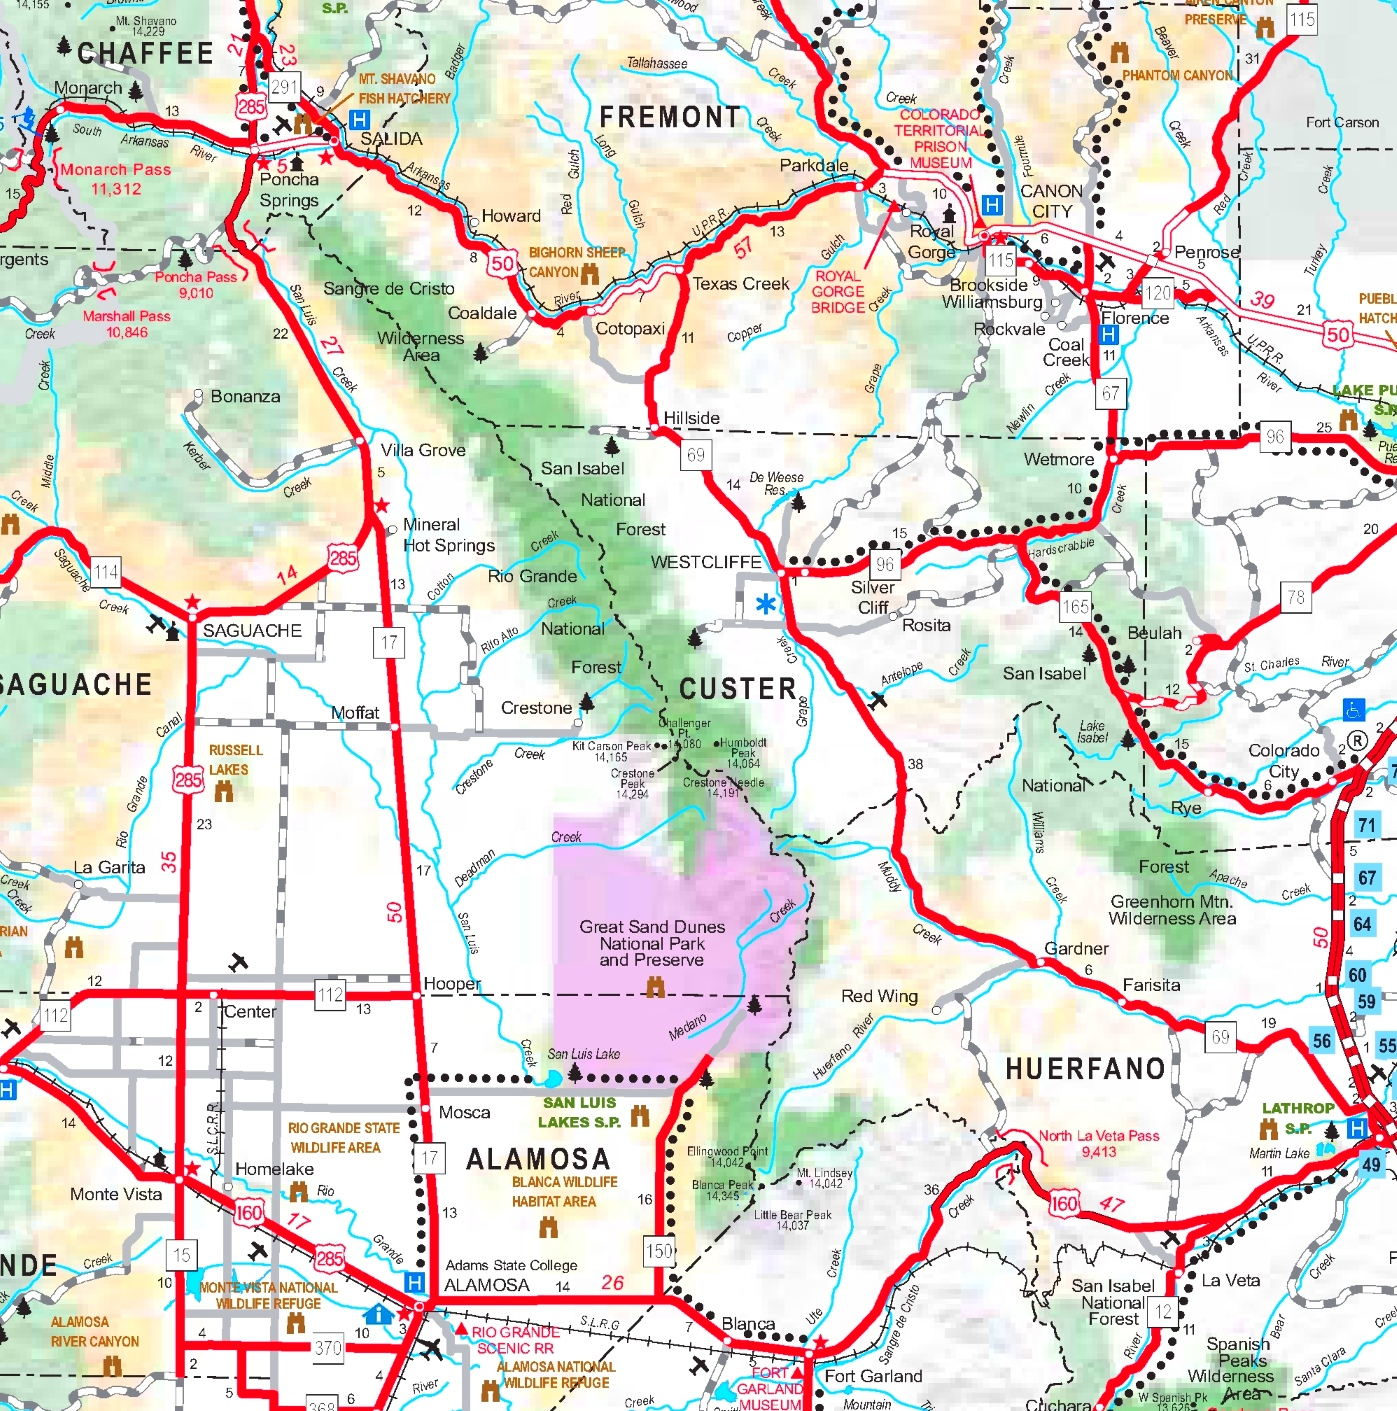 Great Sand Dunes area road map